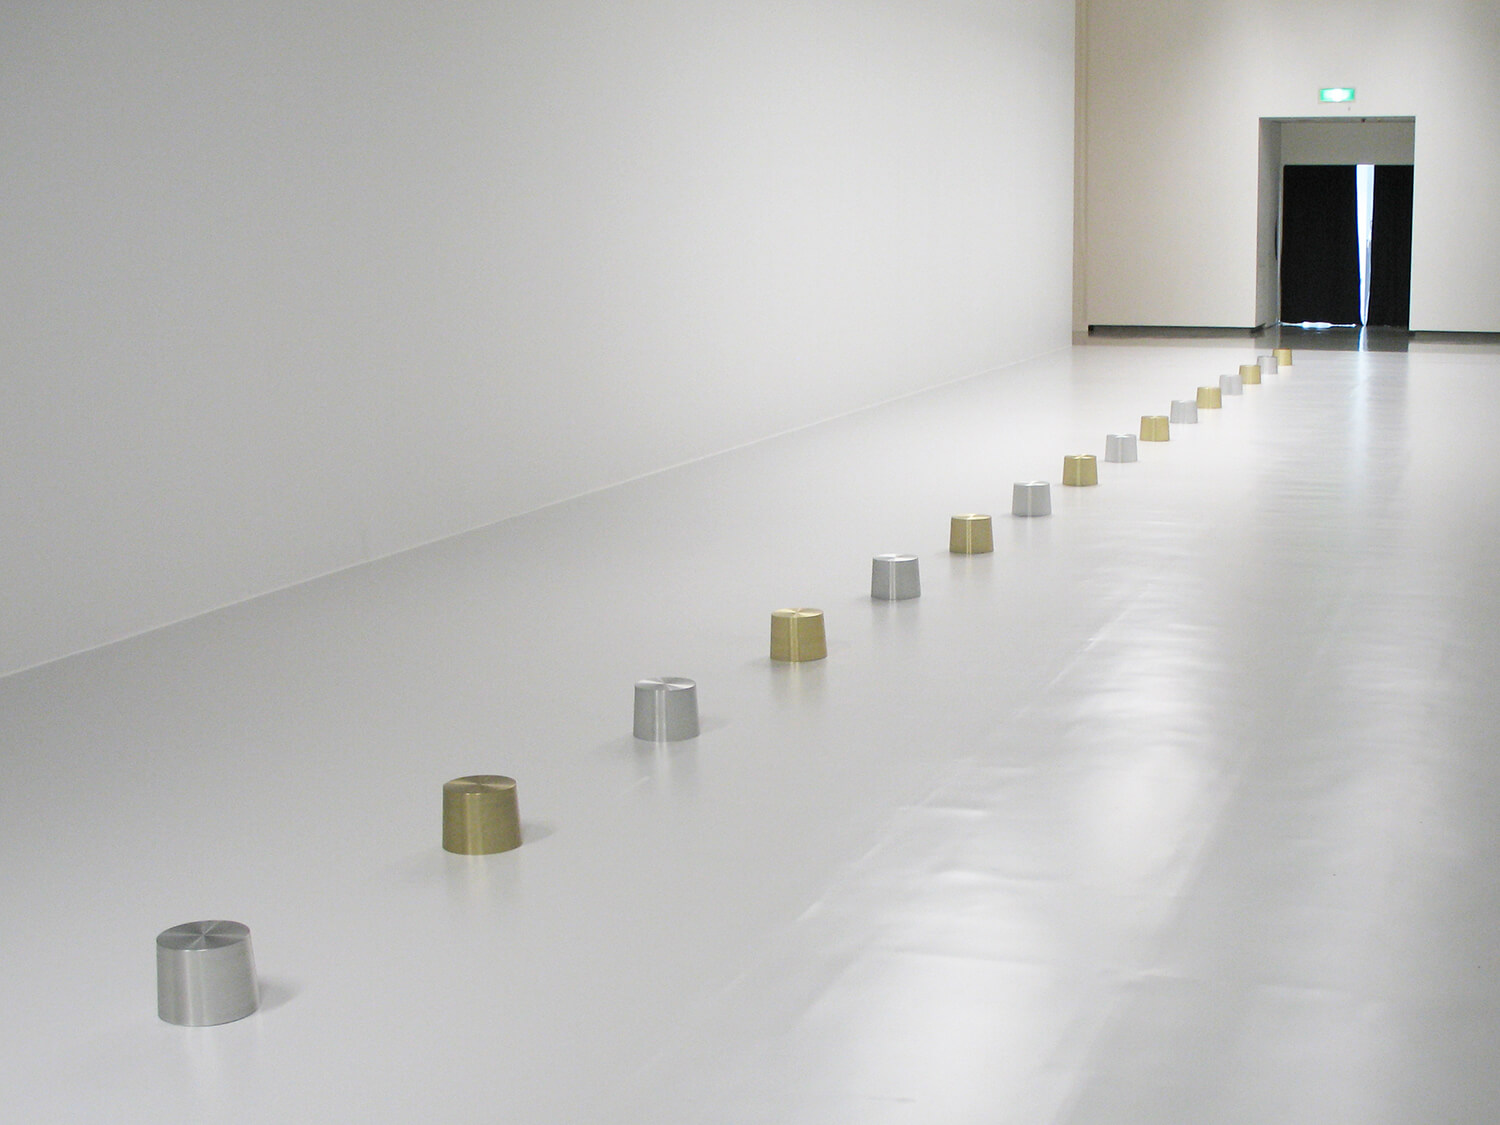 gold and silver, 2008<br>anodized aluminum (16 pieces) / top dia 17.8, bottom dia 19.9, h. 14.9 cm each / col. Private, New York